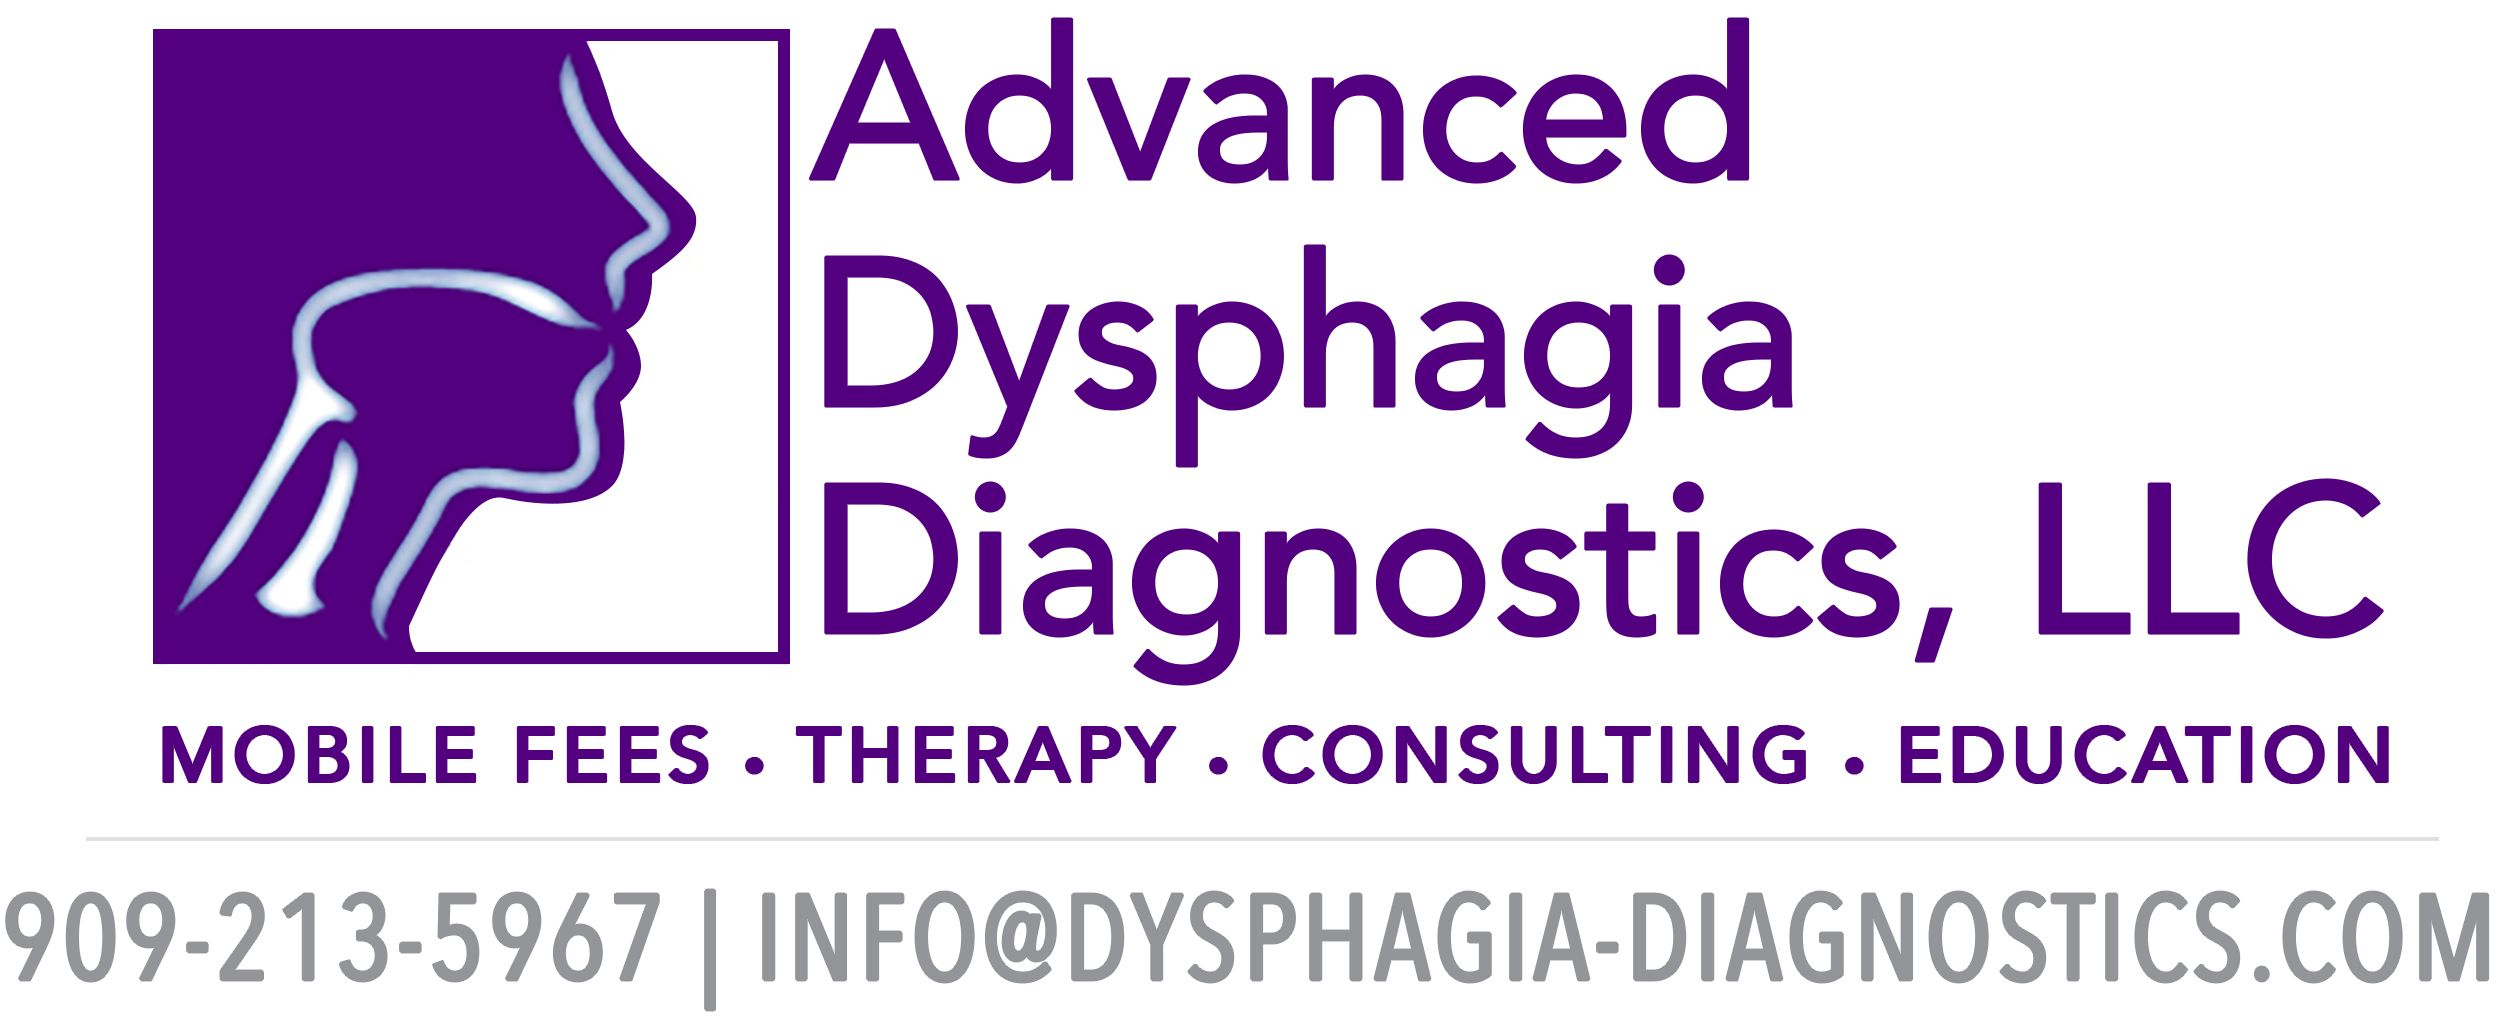 Advanced Dysphagia-Diagnostics